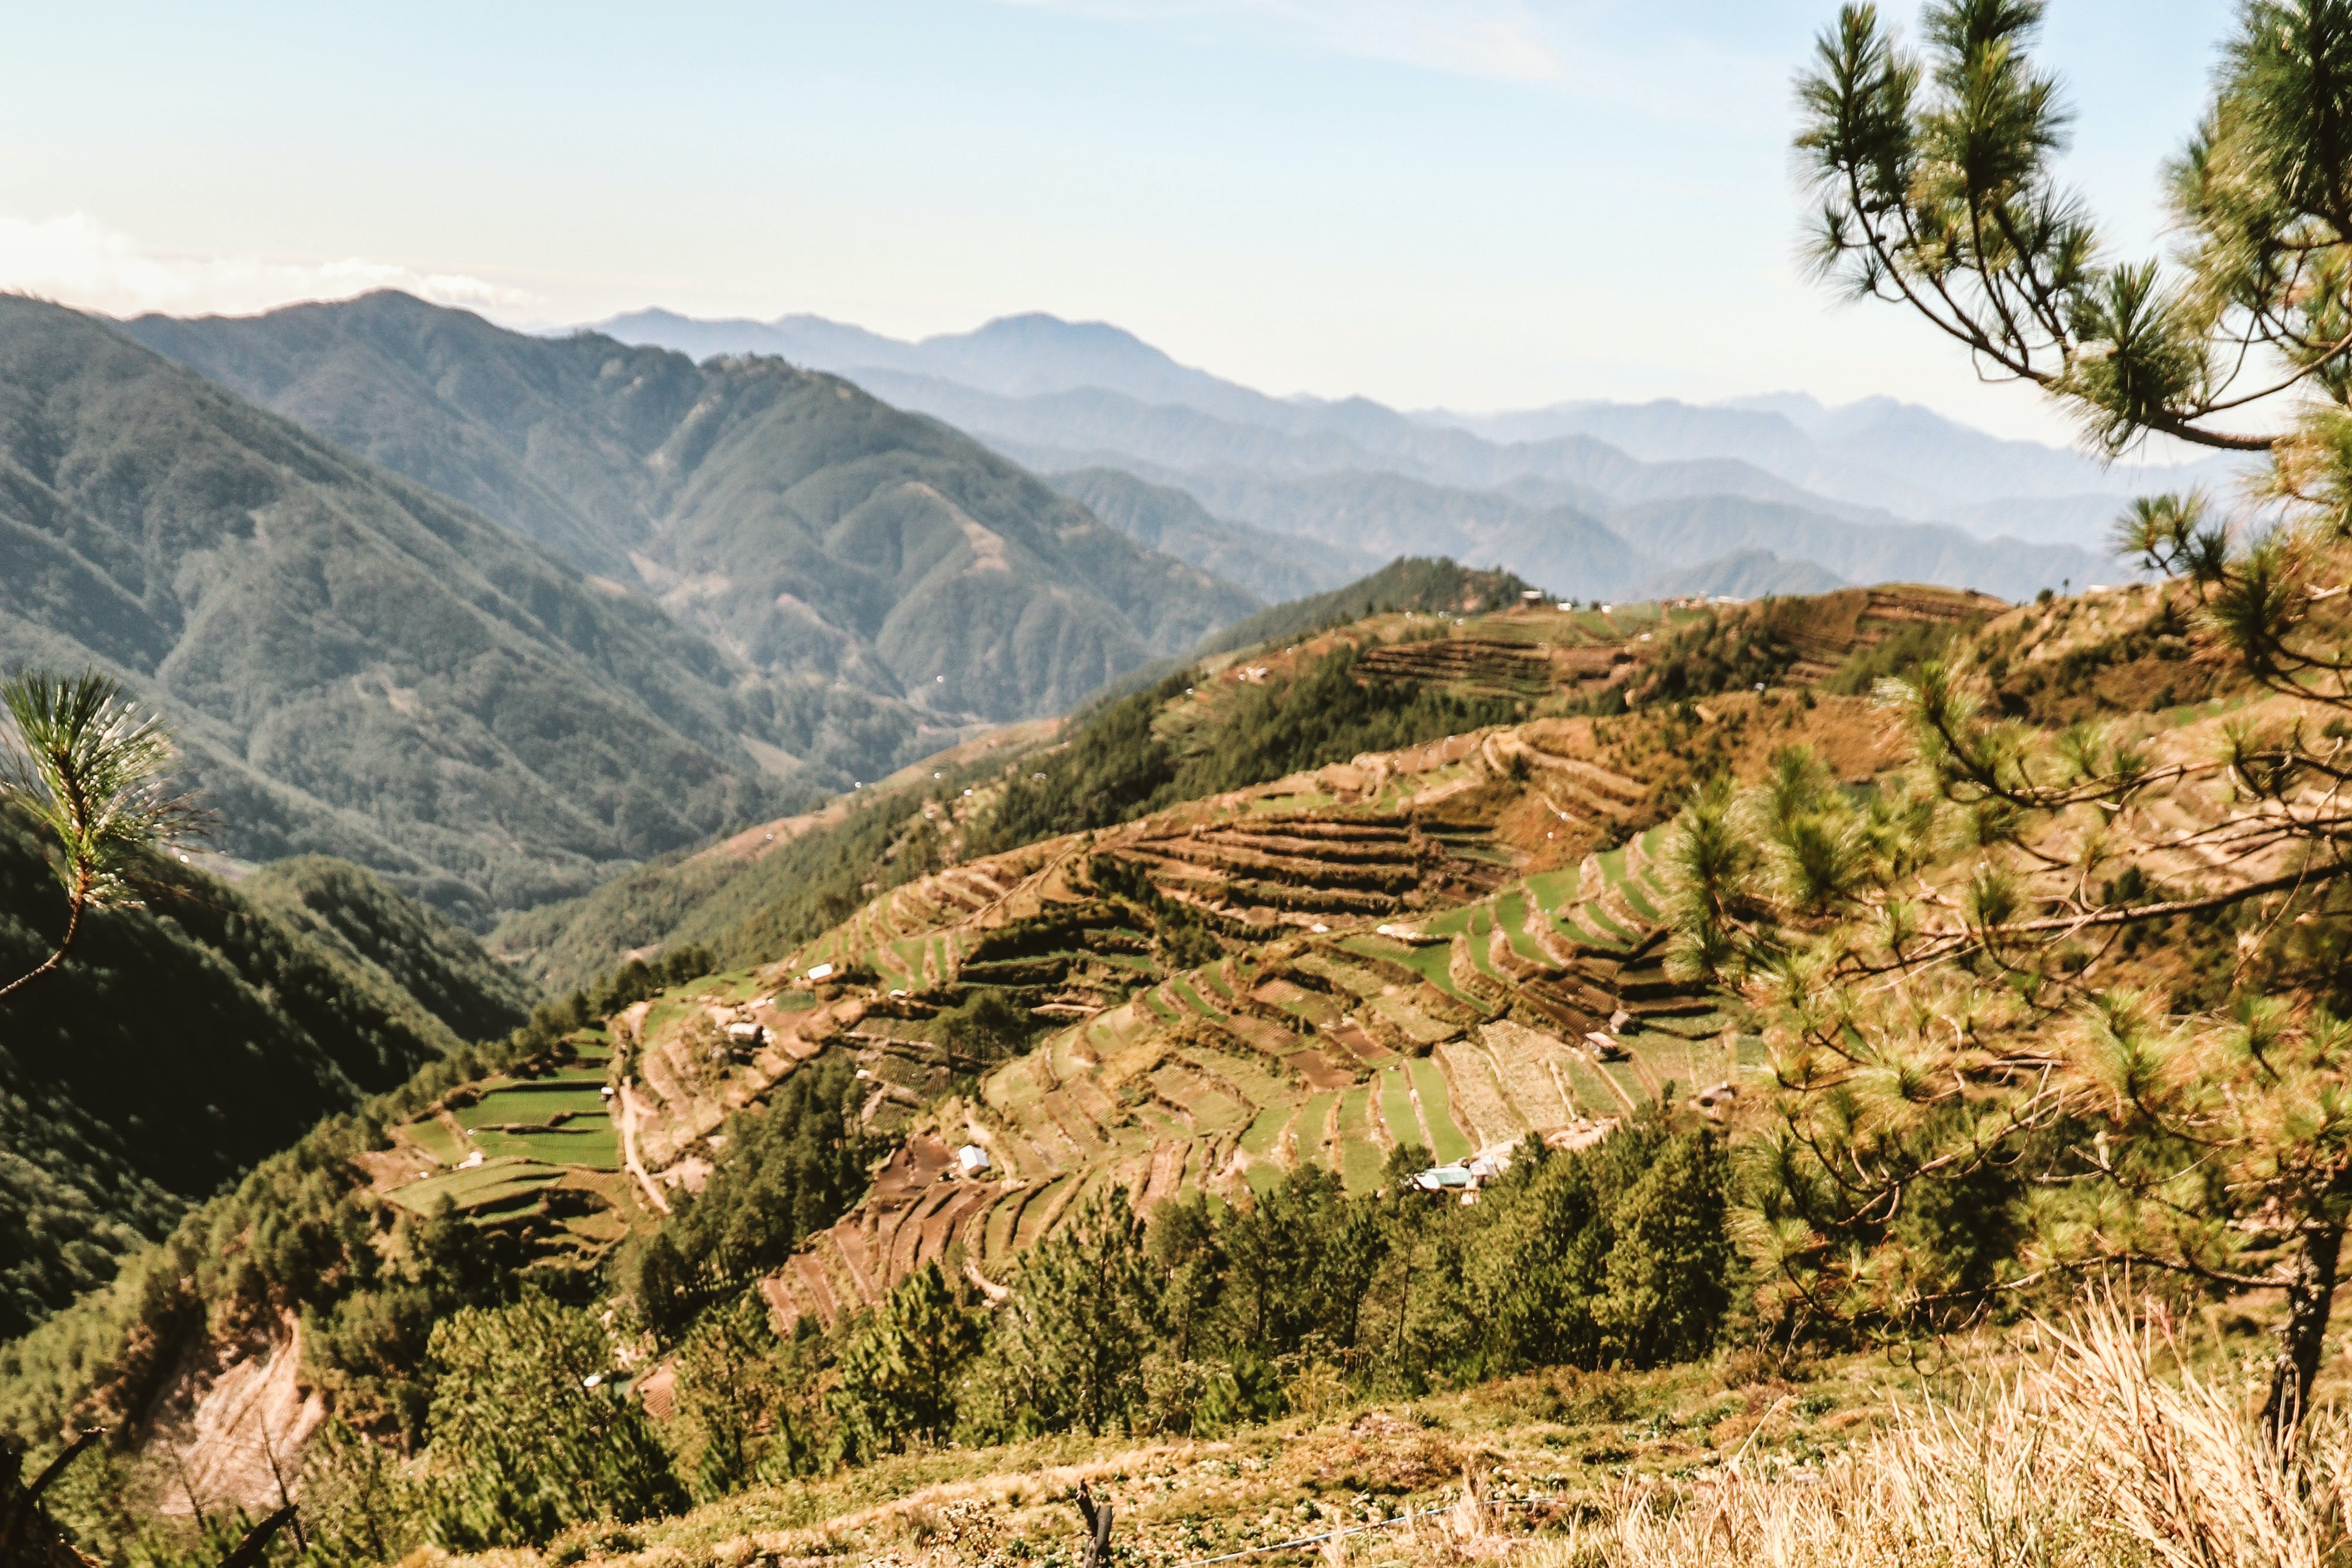 Free stock photo of mountain, nature, Philippines, rice terraces